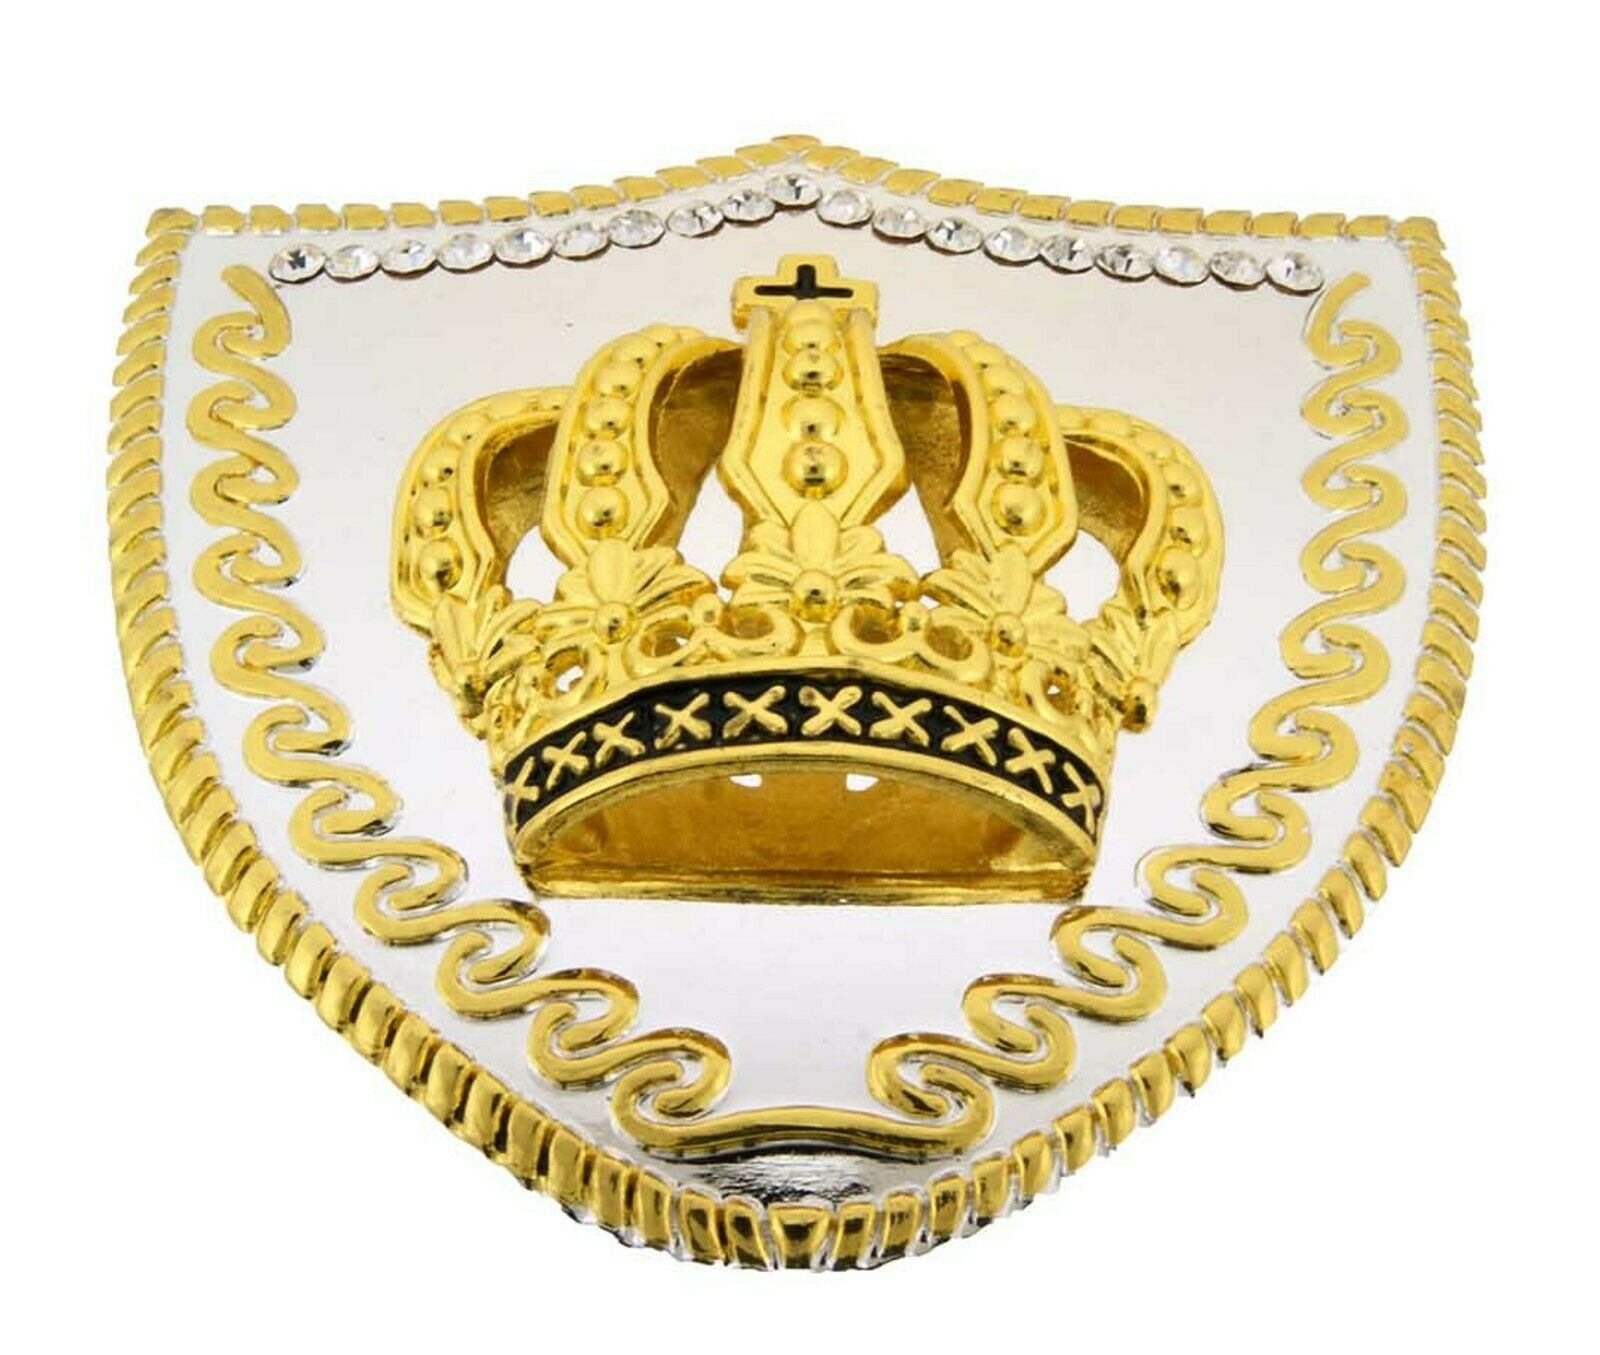 Papa Crown Belt Buckle Feathers Gold Metal Rhinestones High-end Fashion Quality